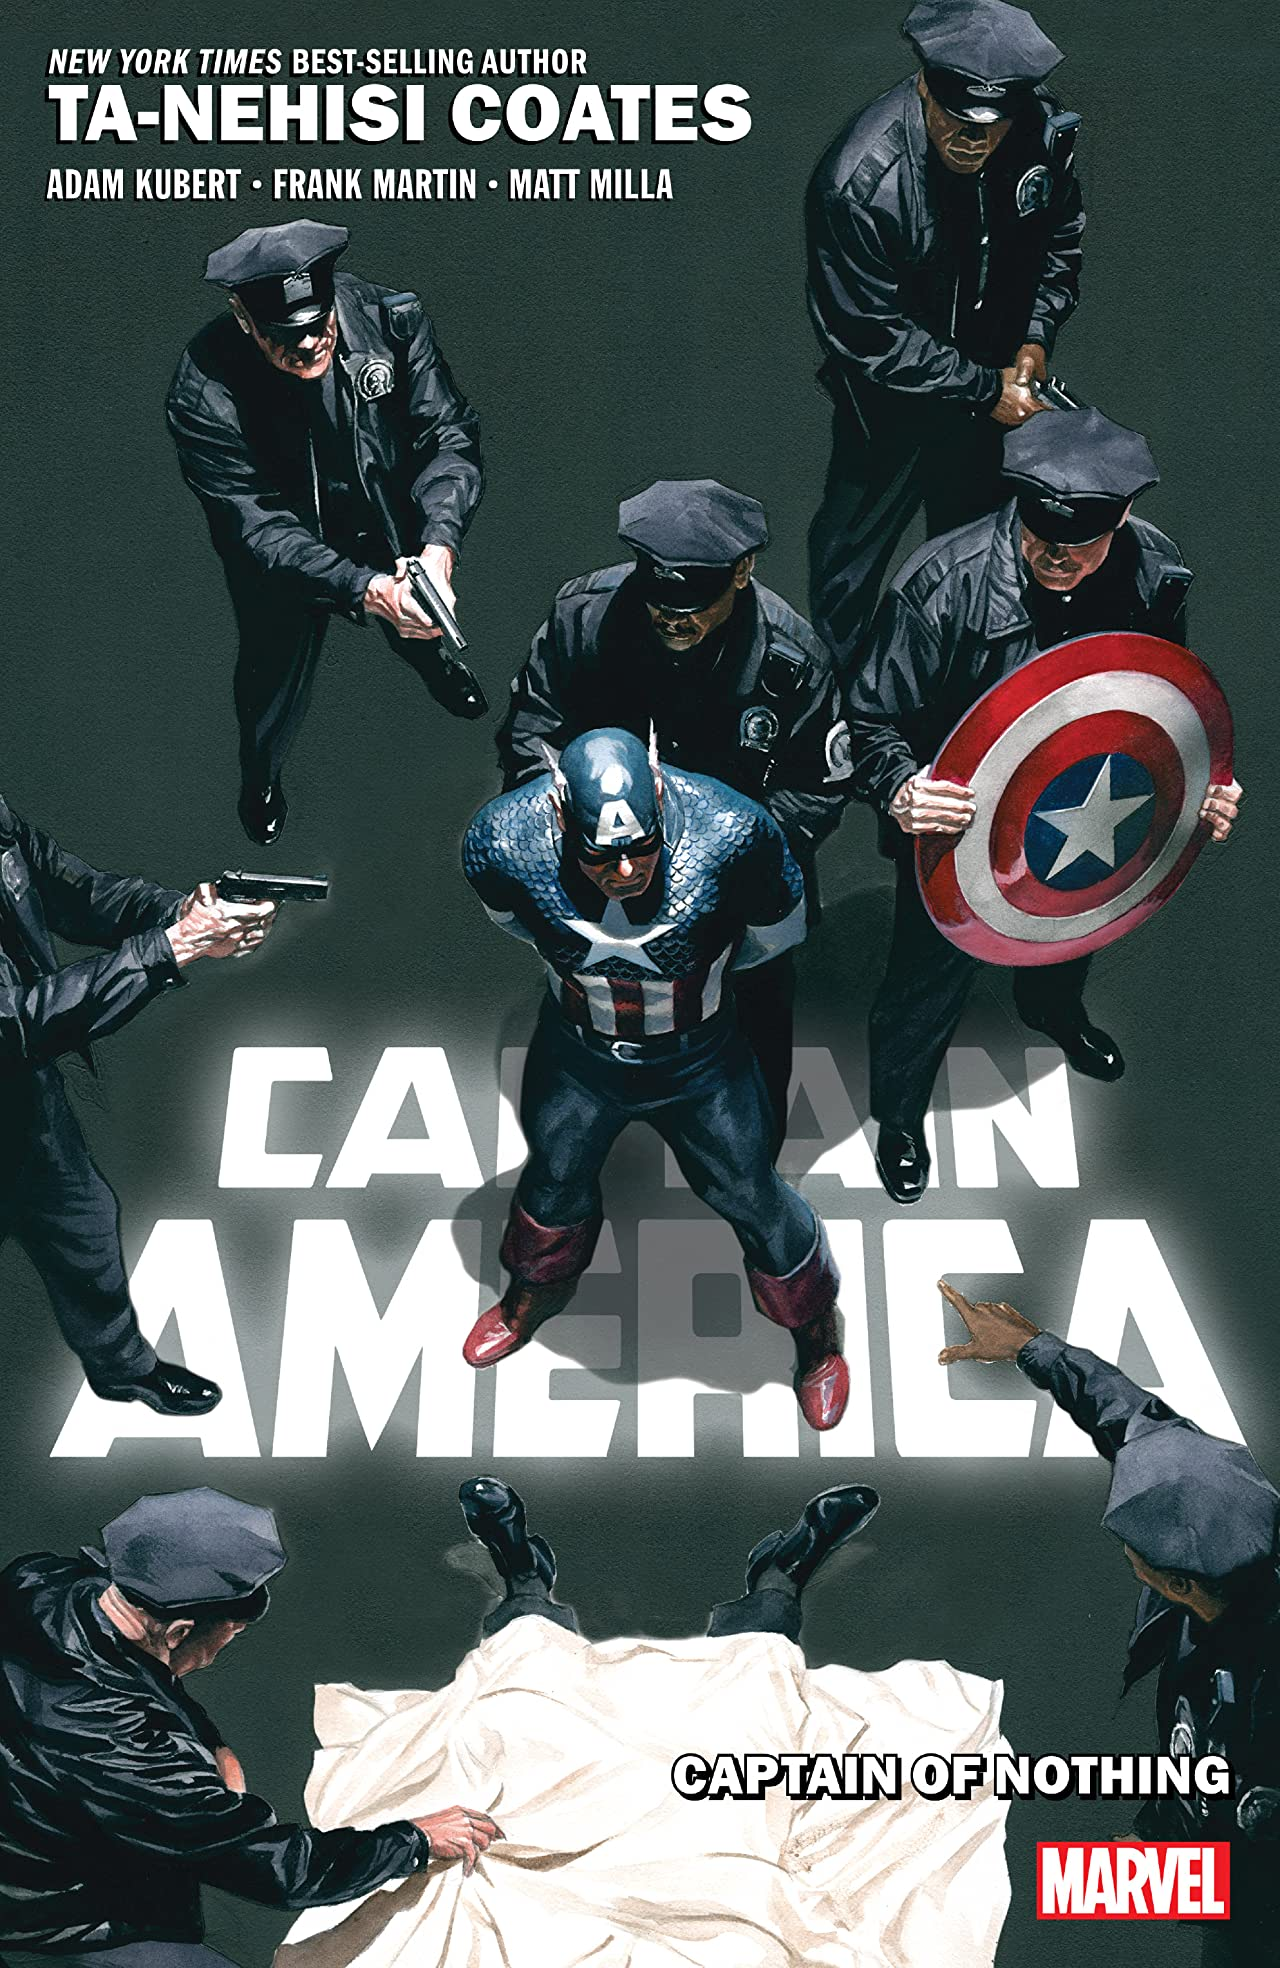 Captain America Vol. 2: Captain Of Nothing